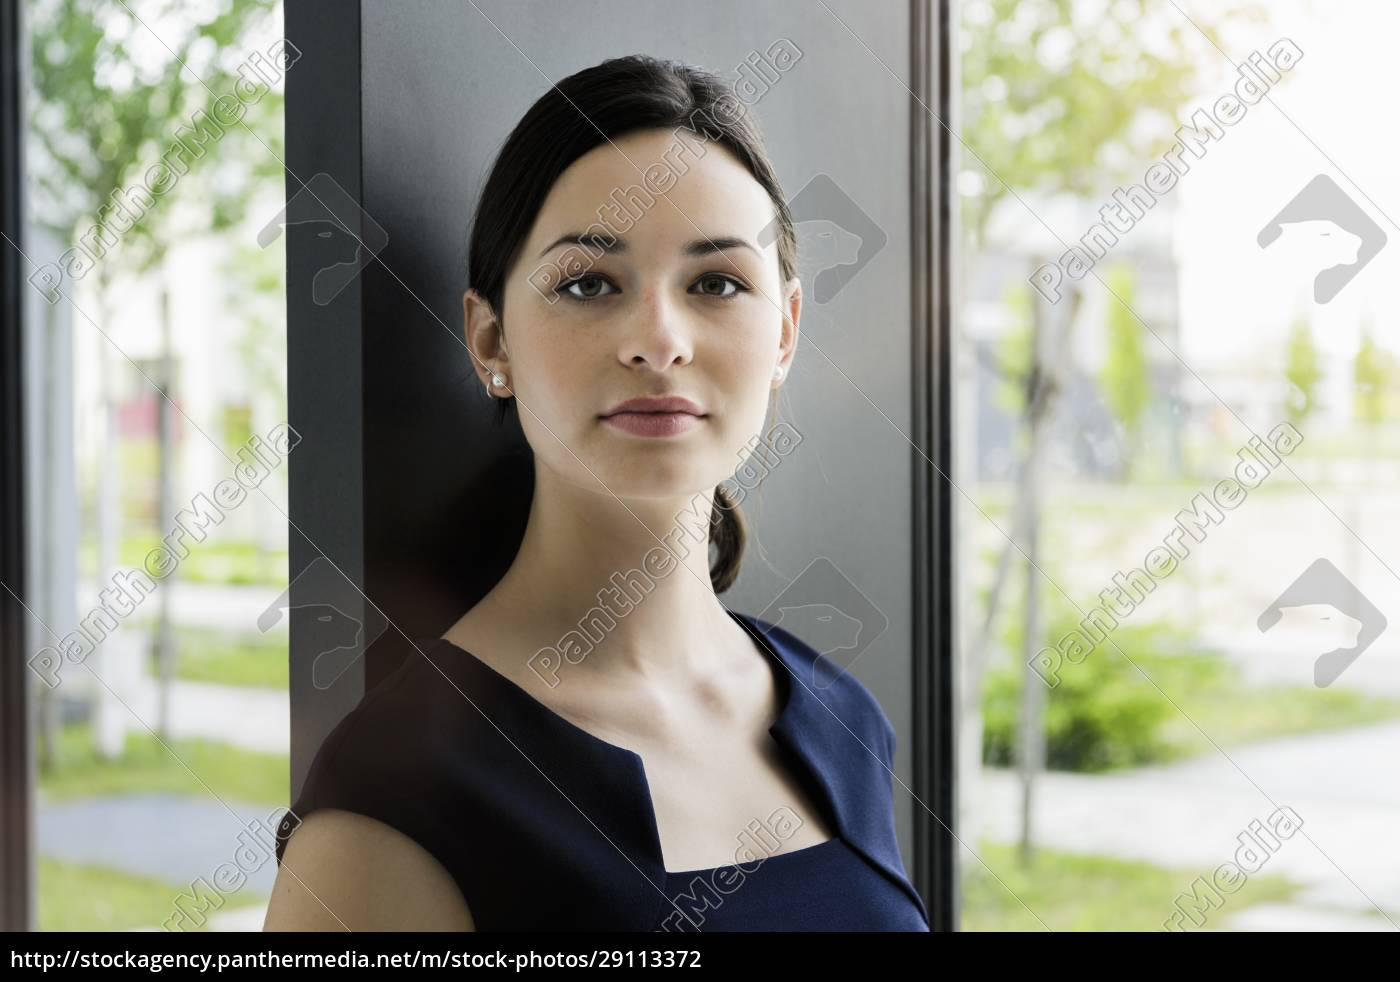 close-up, of, confident, businesswoman, by, window - 29113372